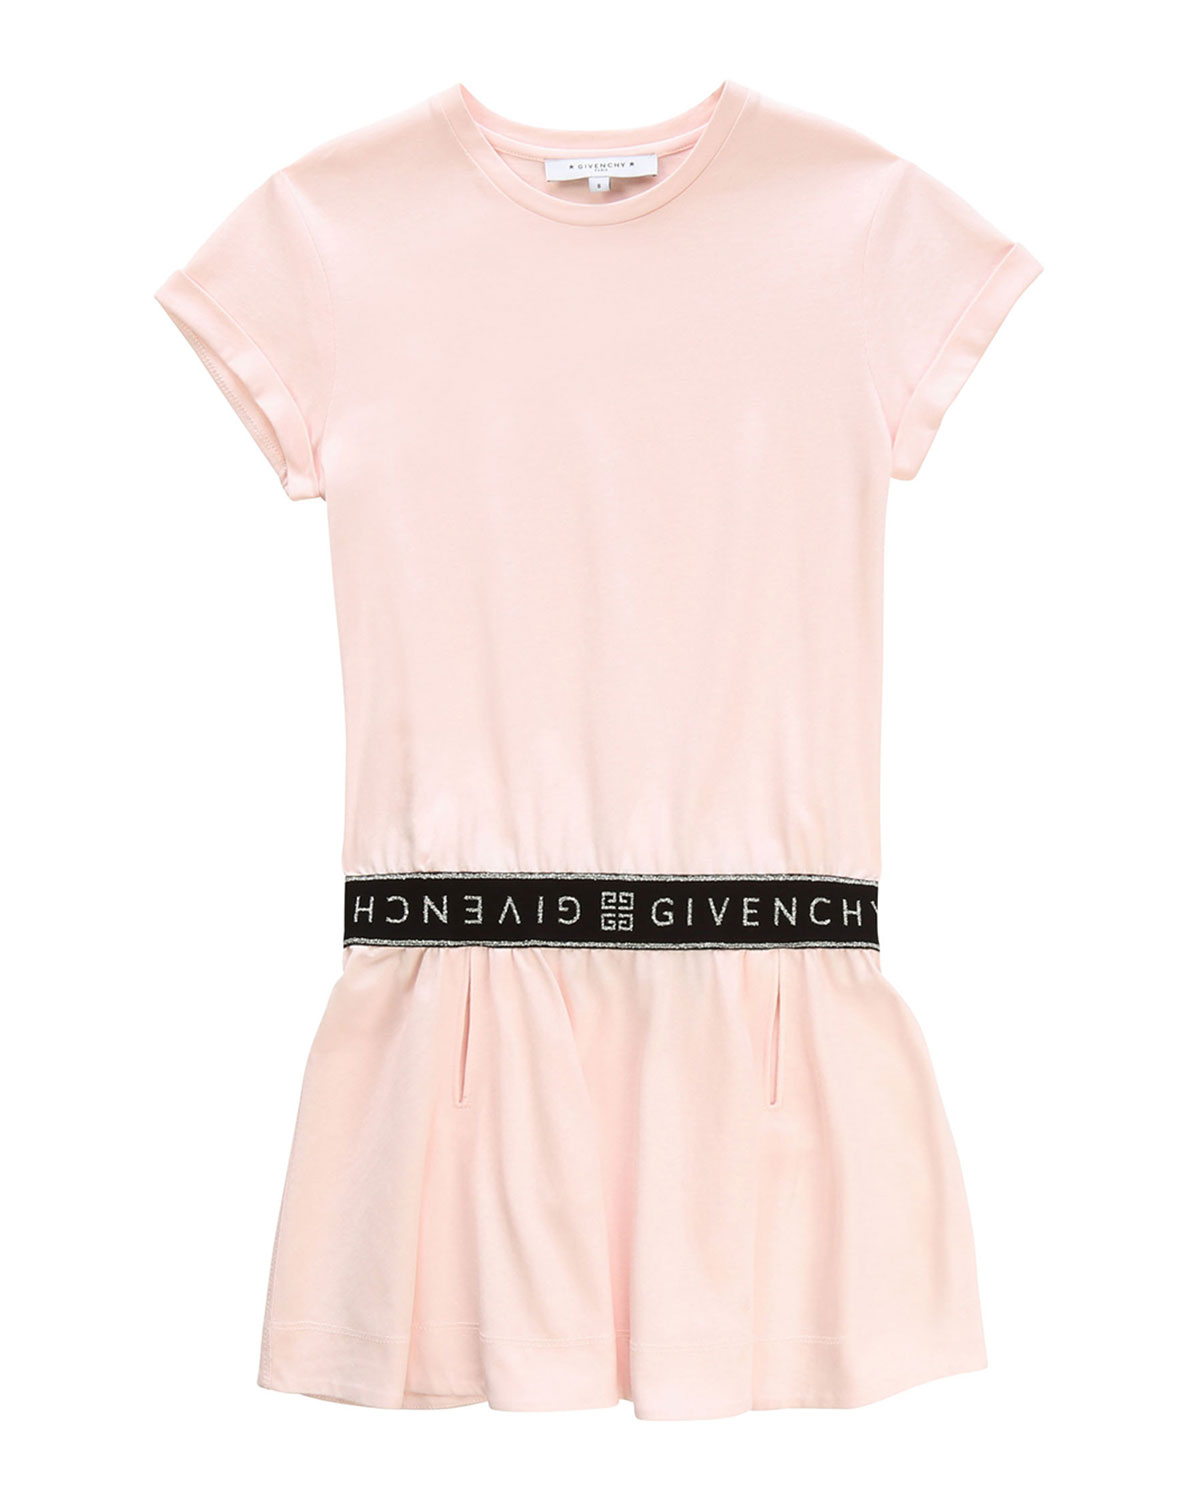 Givenchy Short-Sleeve Dress with Logo Details, Size 4